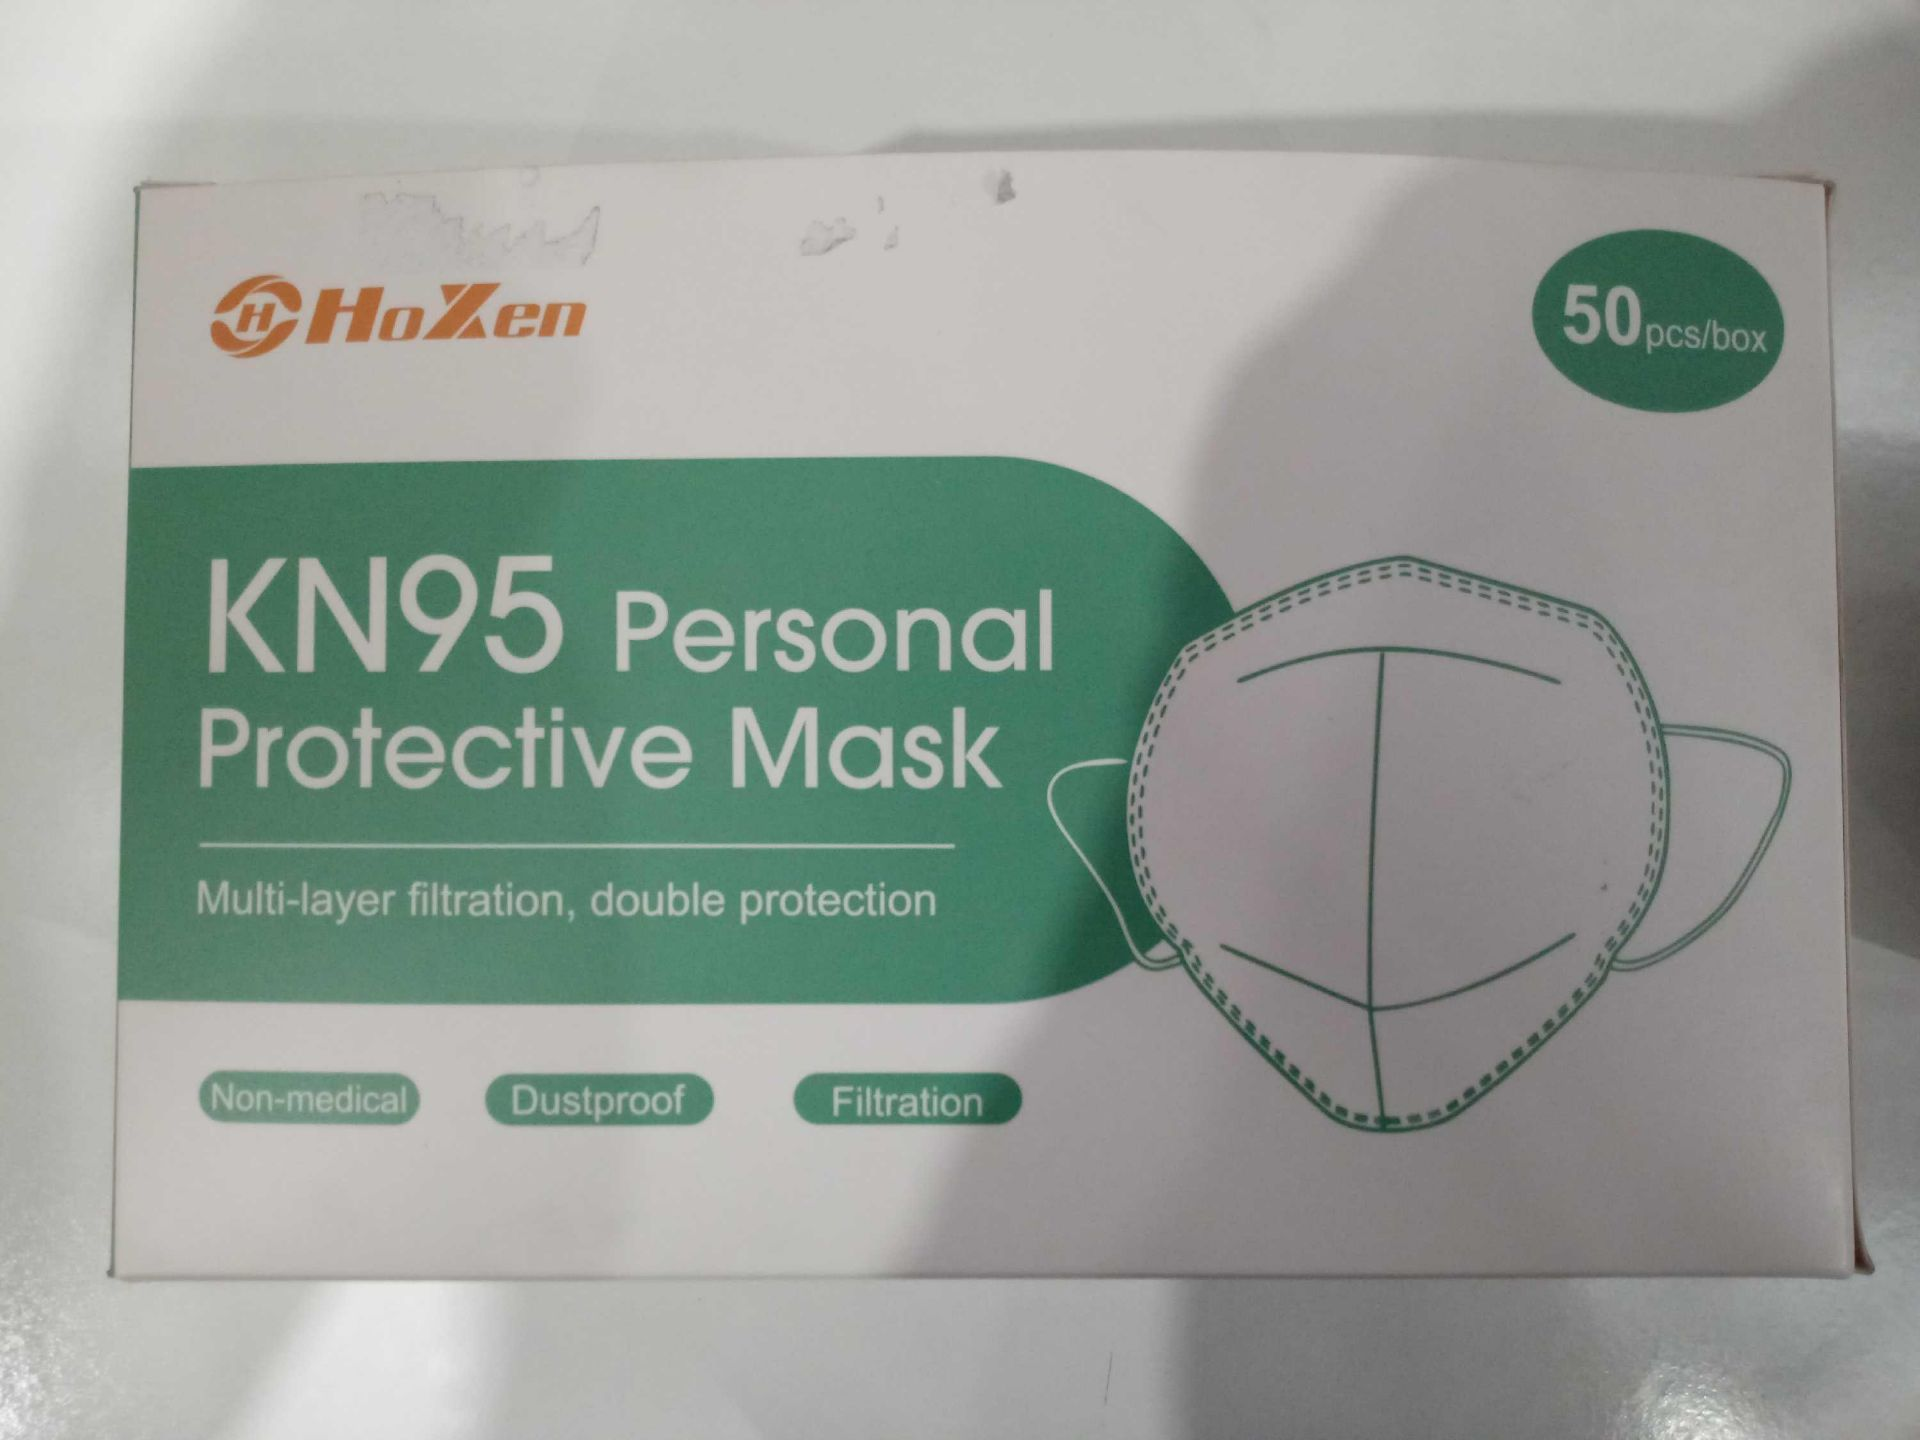 Lot 375 - Box of KN95 personal protective masks